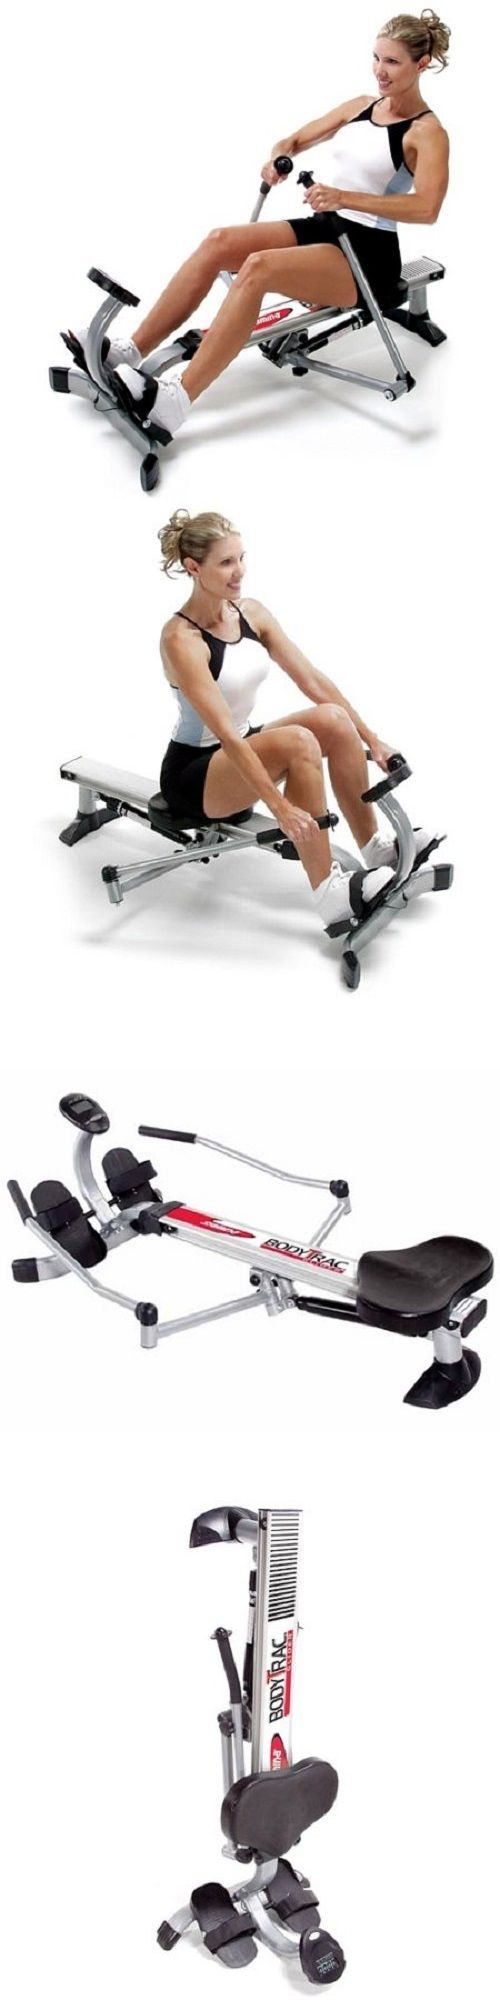 Rowing Machines 28060: Body Trac Glider By Stamina, Home Fitness Gym Training New -> BUY IT NOW ONLY: $139.99 on eBay!